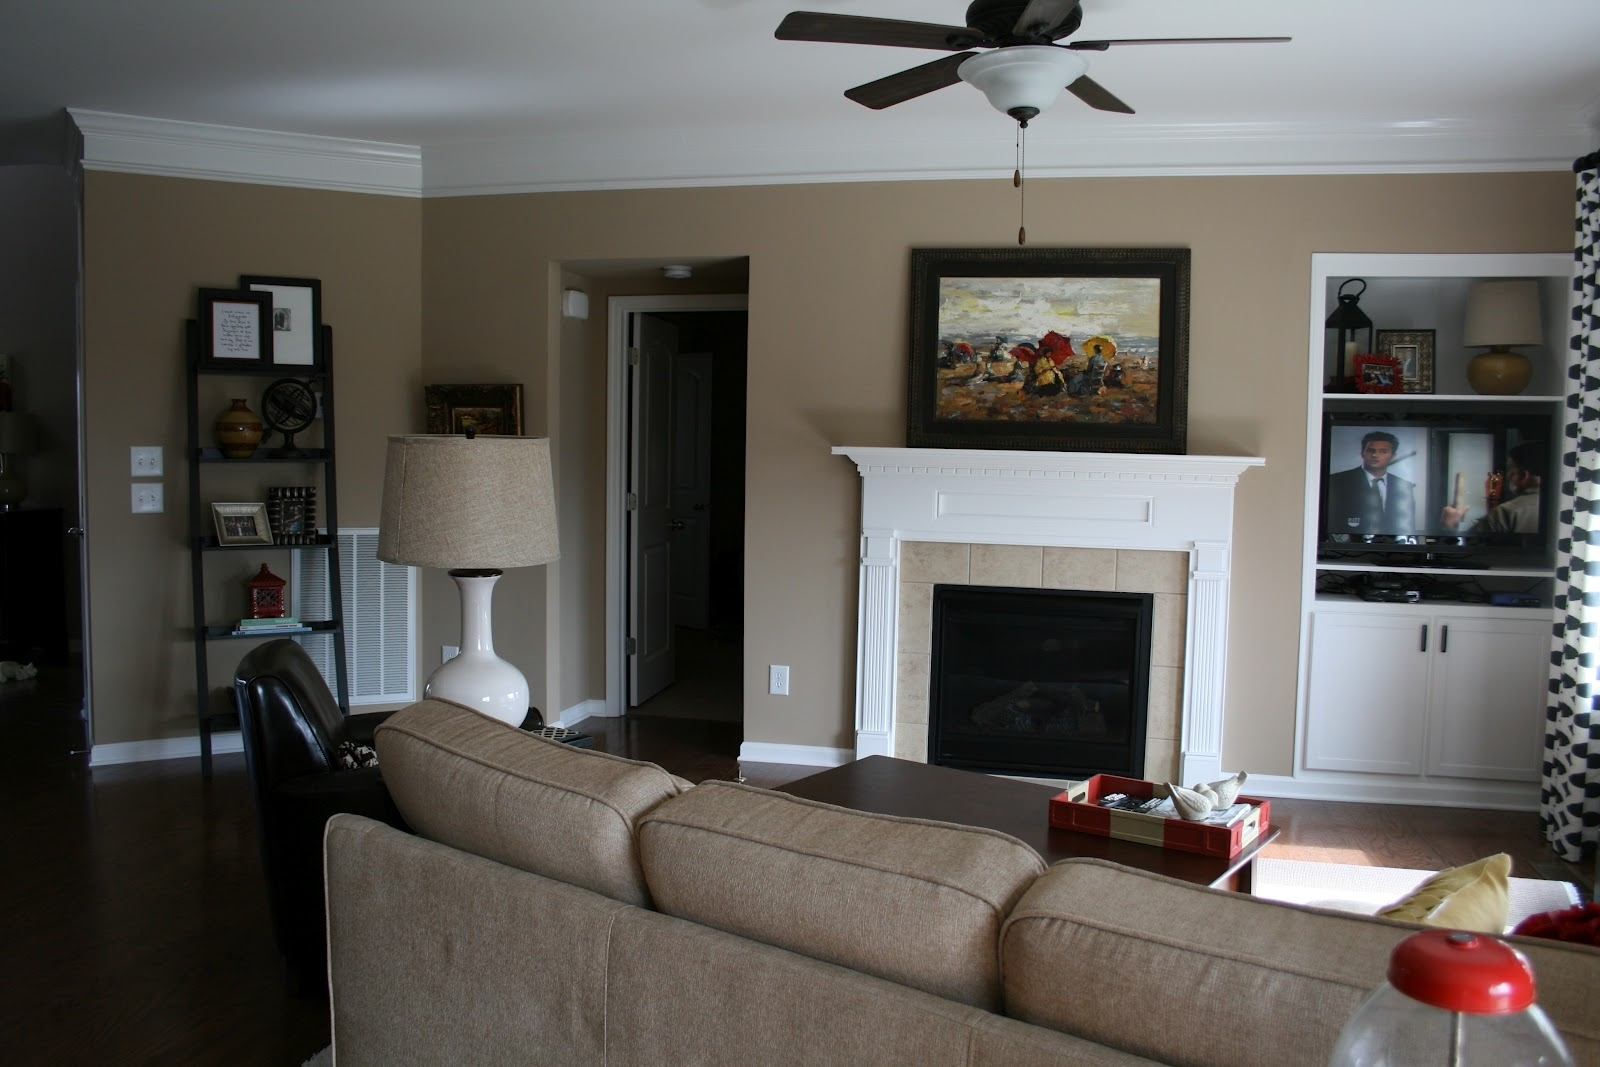 Tan Accent Wall Brown Accent Wall Living Room Ideas Wall Colors With Regard To Fashionable Wall Accents For Tan Room (View 15 of 15)